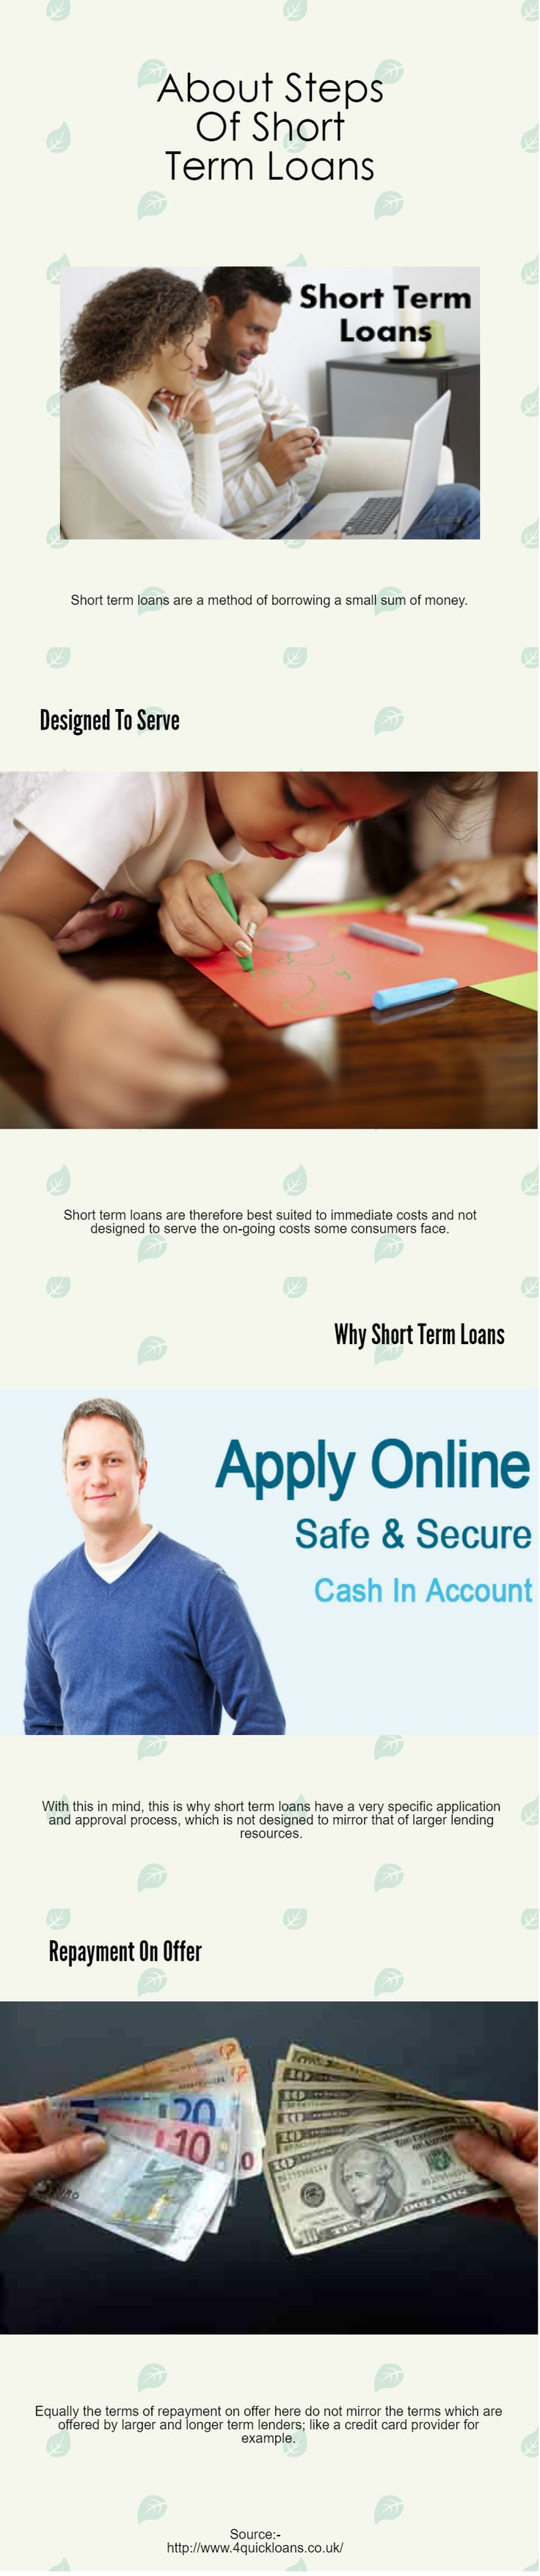 The different application steps of short term loans 4quickloans is not a direct lender, we are a free to use loan matching service. Loan terms, conditions and policies vary by lender and applicant qualifications. http://quickloans78.livejournal.com/4097.html #instant_payday_loan #quick_payday_loans #quick_loans #installment_loans_direct_landers #installment_loans_no_credit_check #installment_loans_for_bad_credit #payday_loans_online_no_credit_check #short_term_loans_bad_credit…